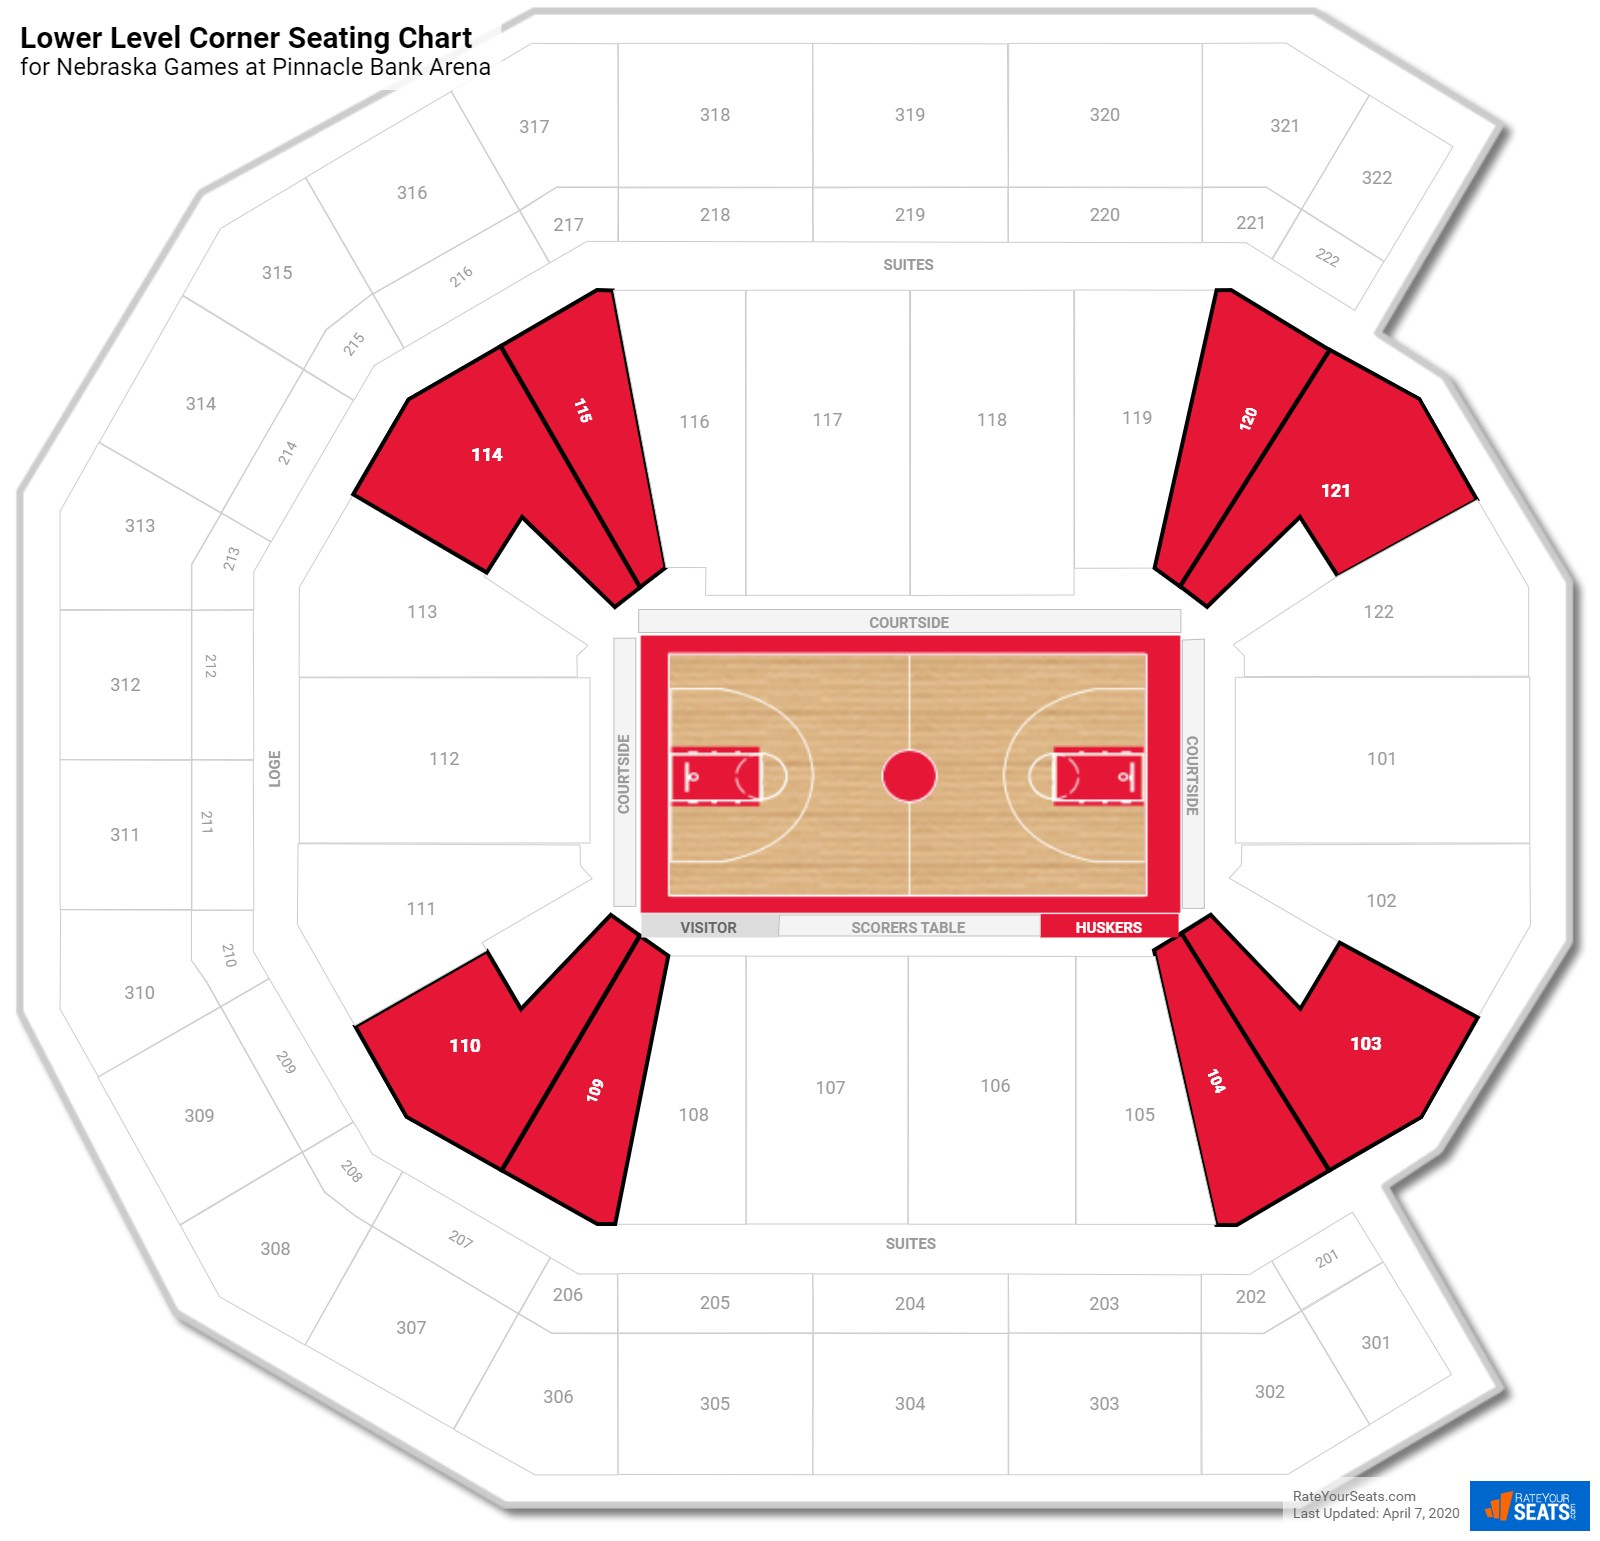 Pinnacle bank arena nebraska seating guide rateyourseats com